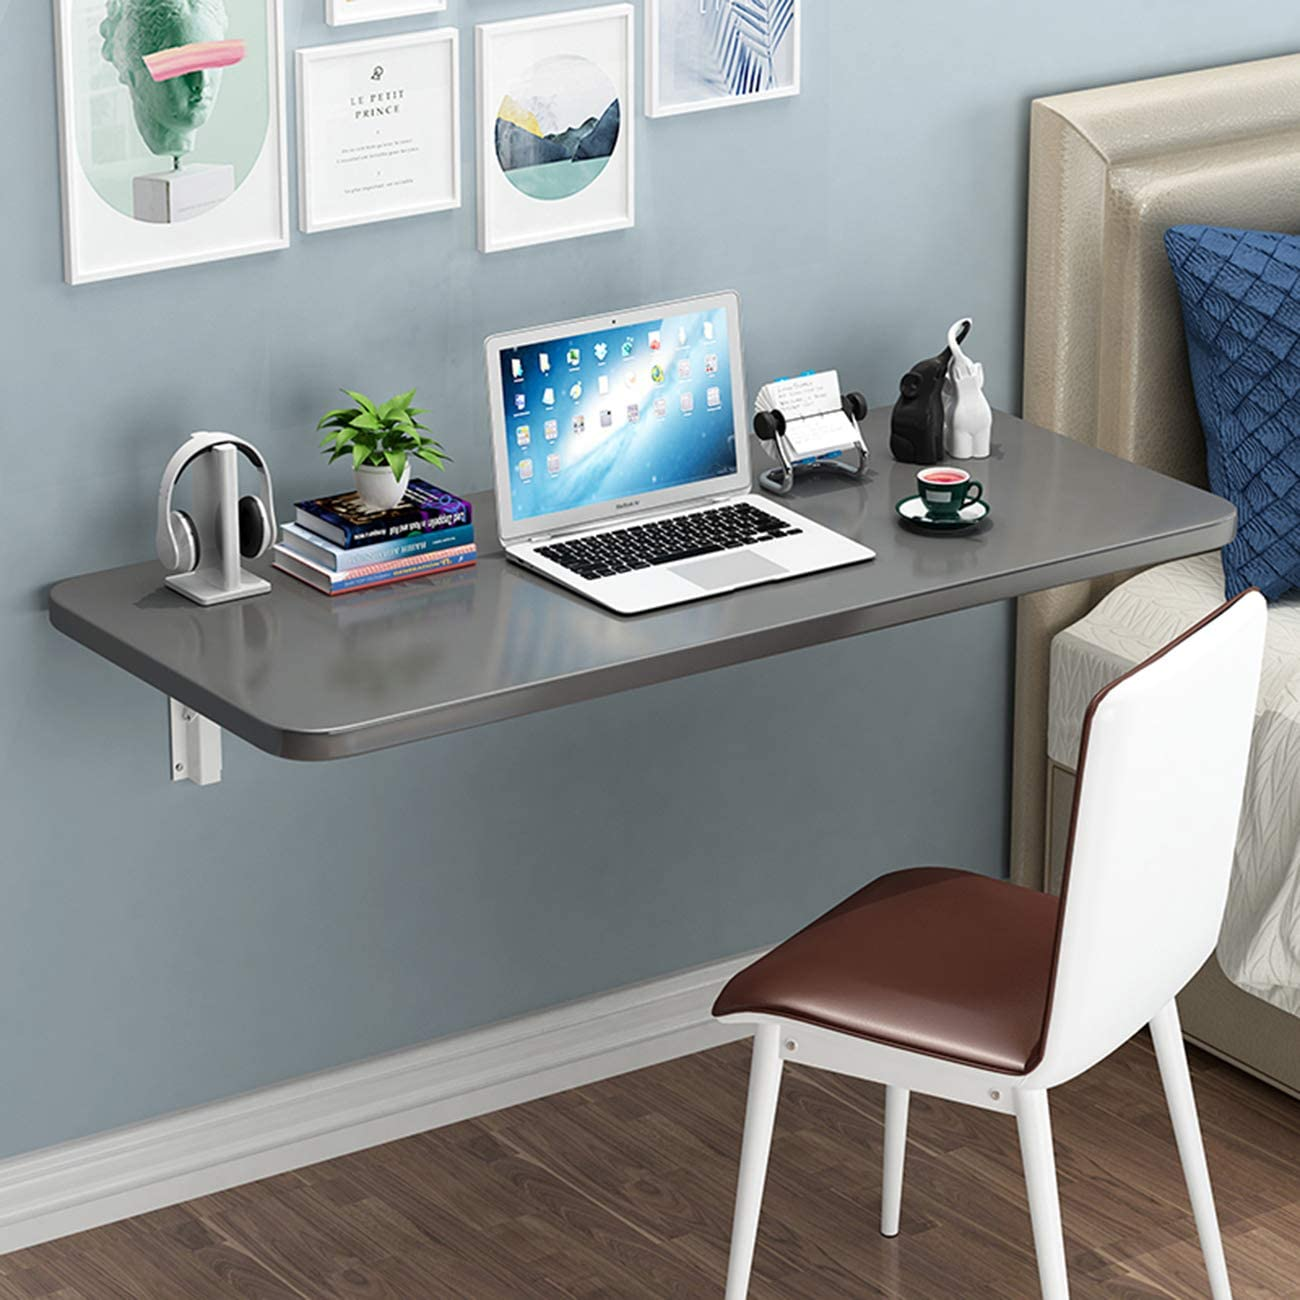 Wall Mounted Floating Folding Desk Computer Table Workbench Dining Drop Leaf Table Fold Away Writing Desk, Home Office Hanging Desk - Space Saving for Small Spaces Study, Bedroom, Bathroom or Balcon